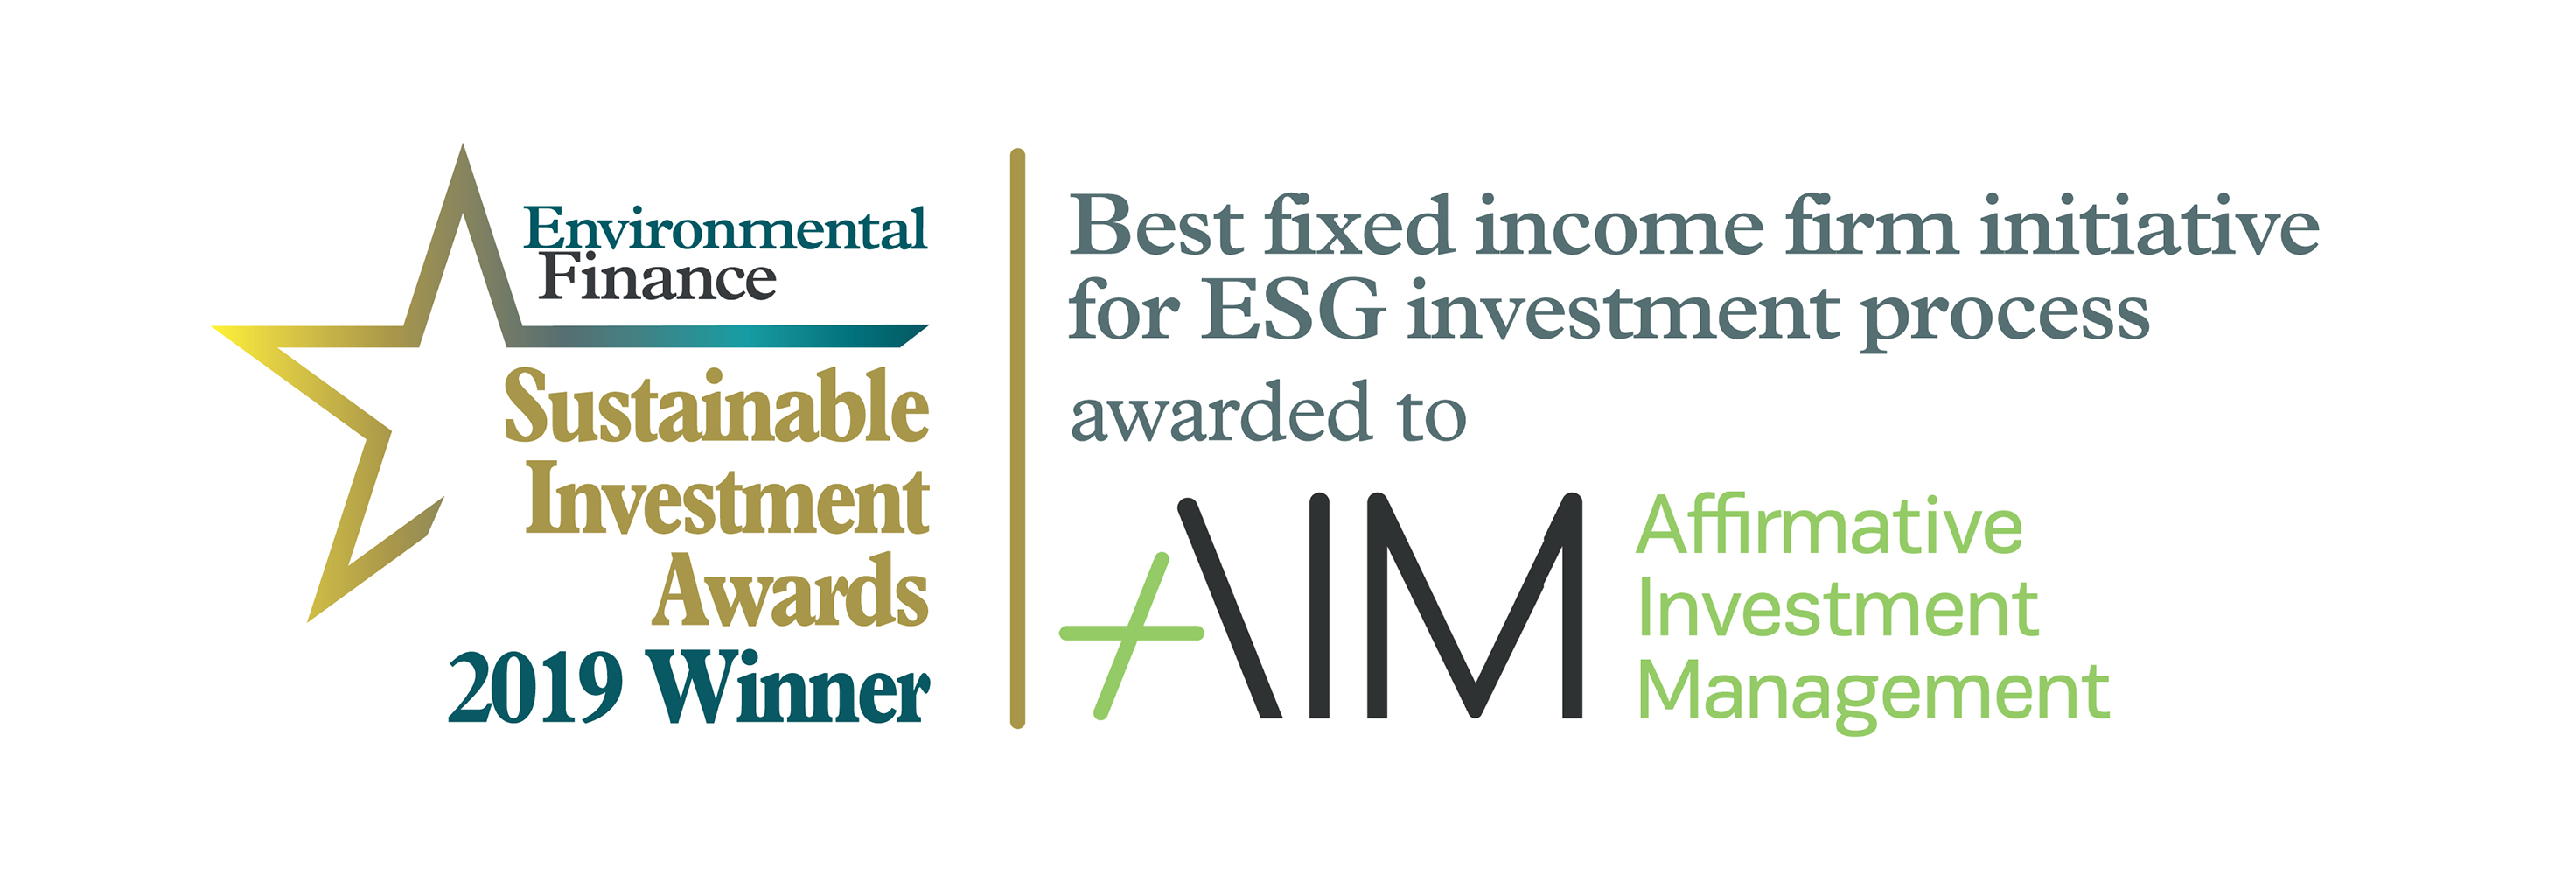 AIM Wins at the 2019 Sustainable Investment Awards